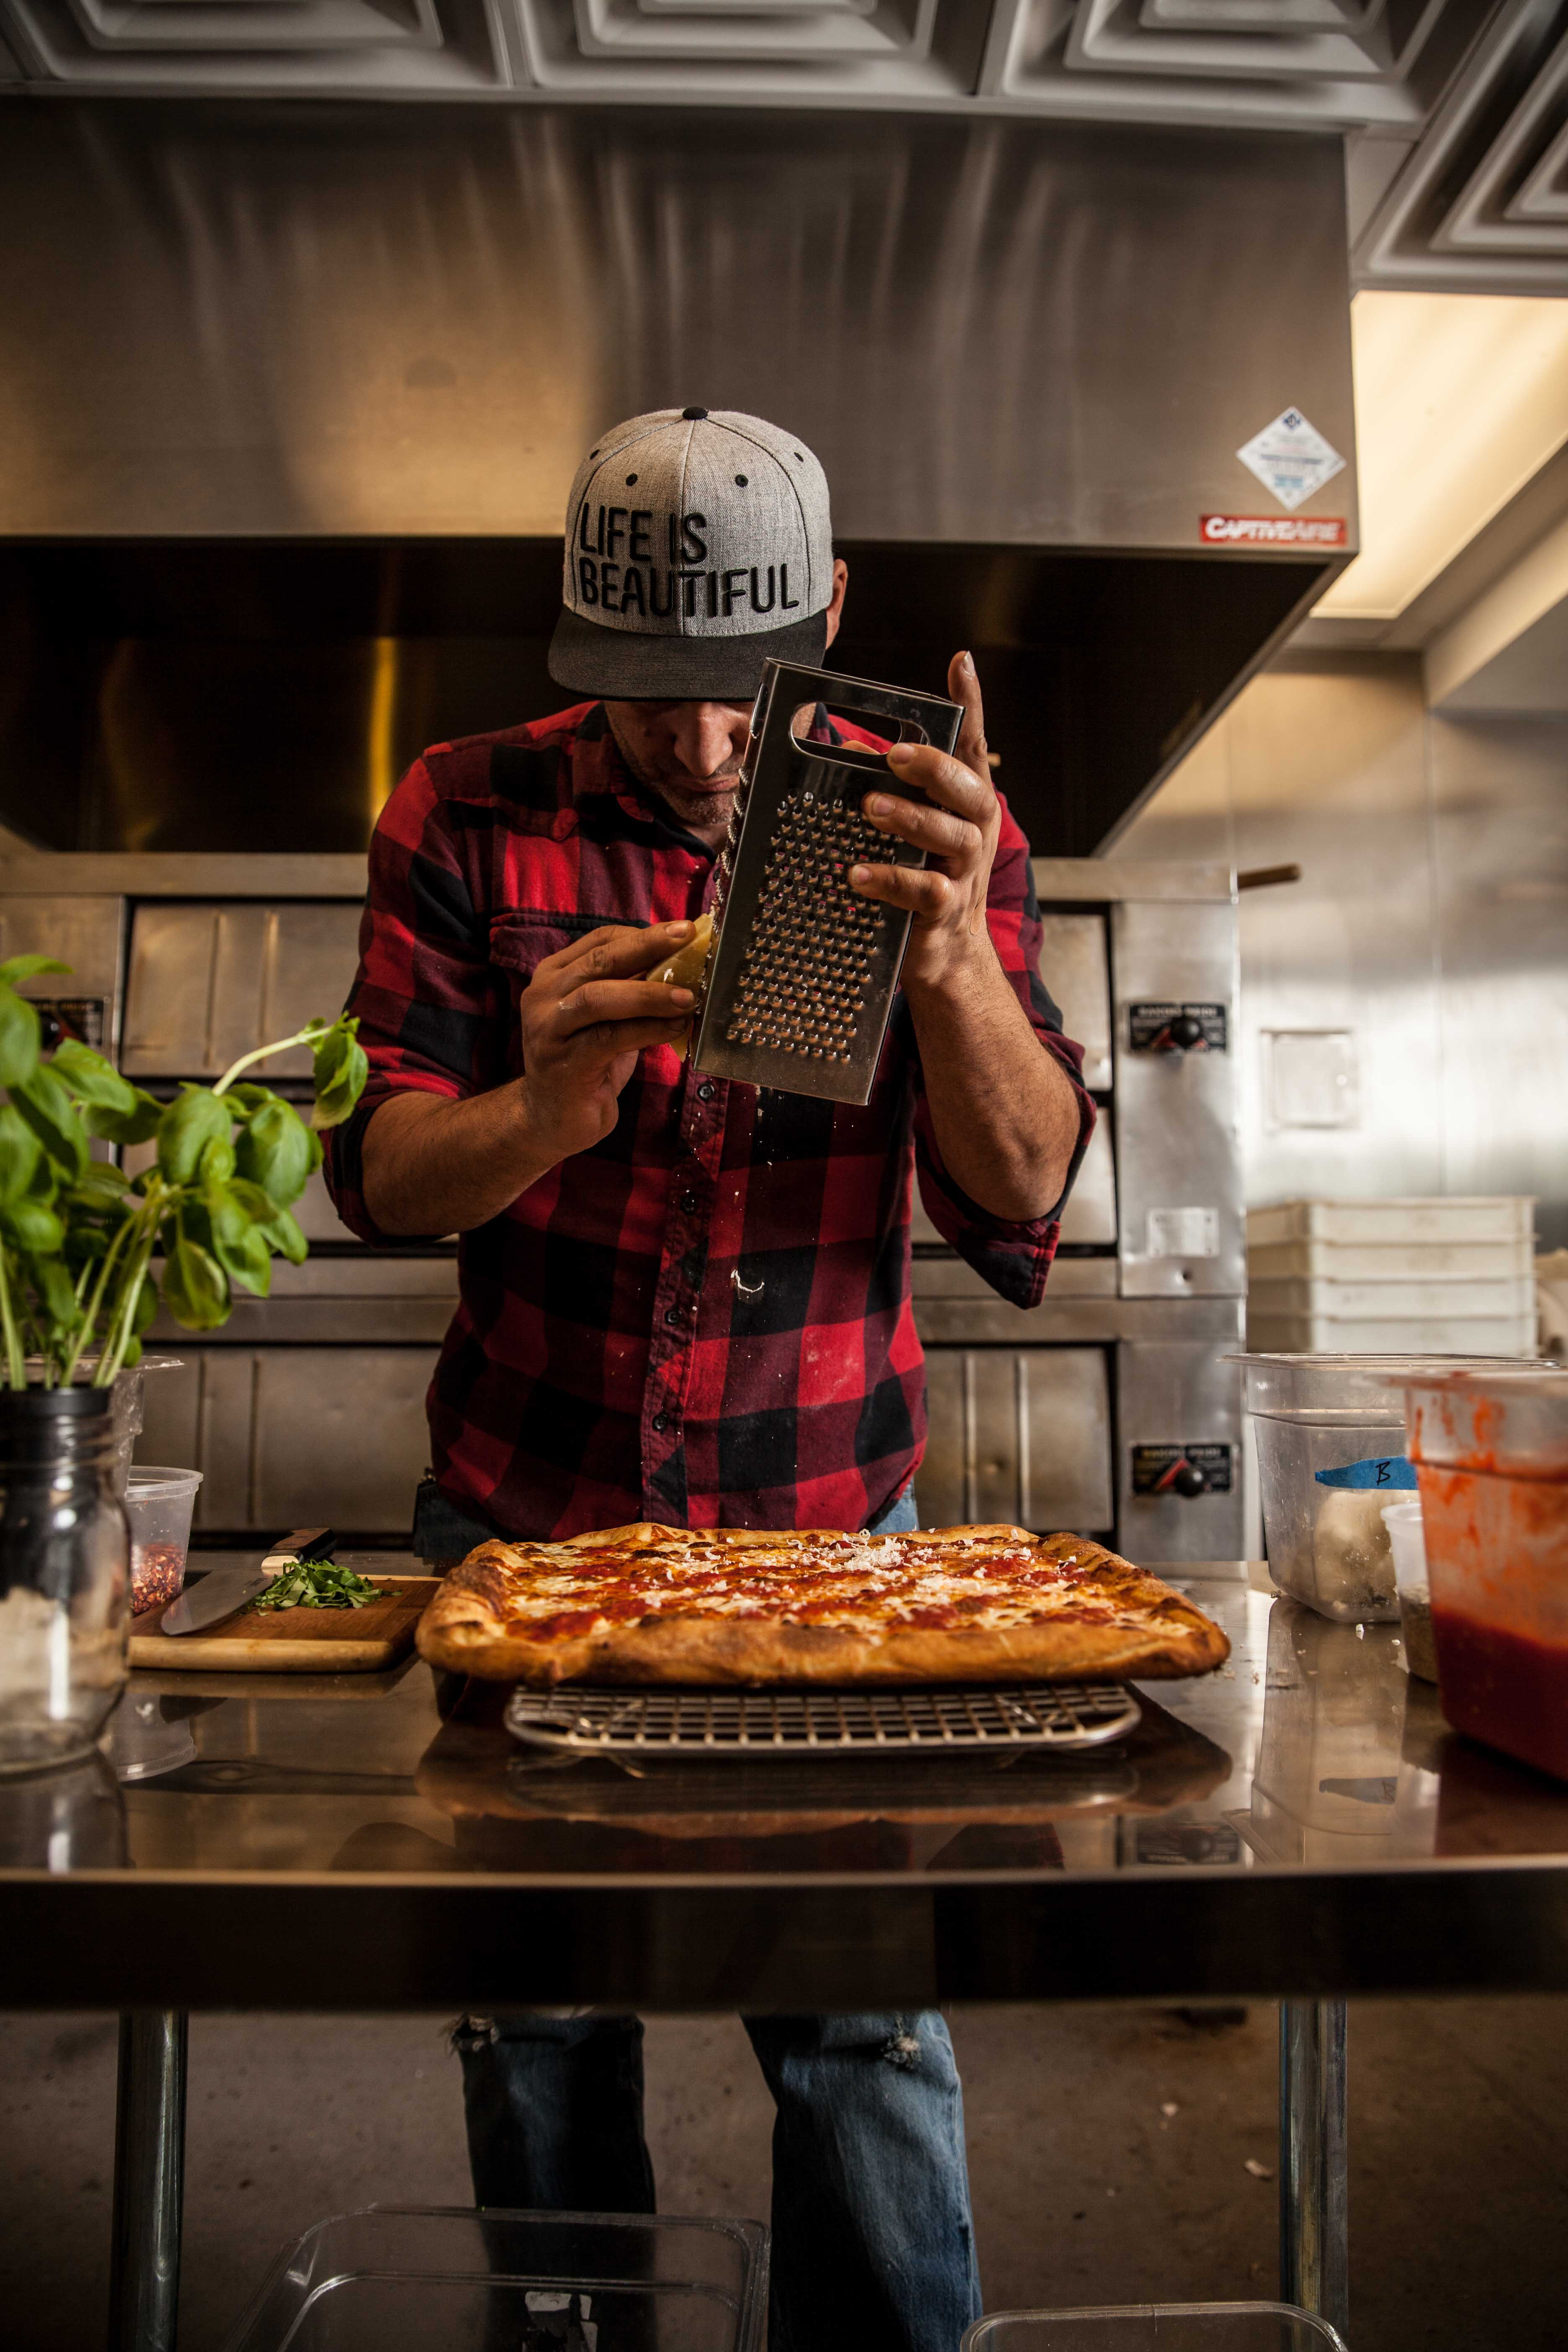 A man in a red plaid button-down shirt shaves Parmesan on a pizza